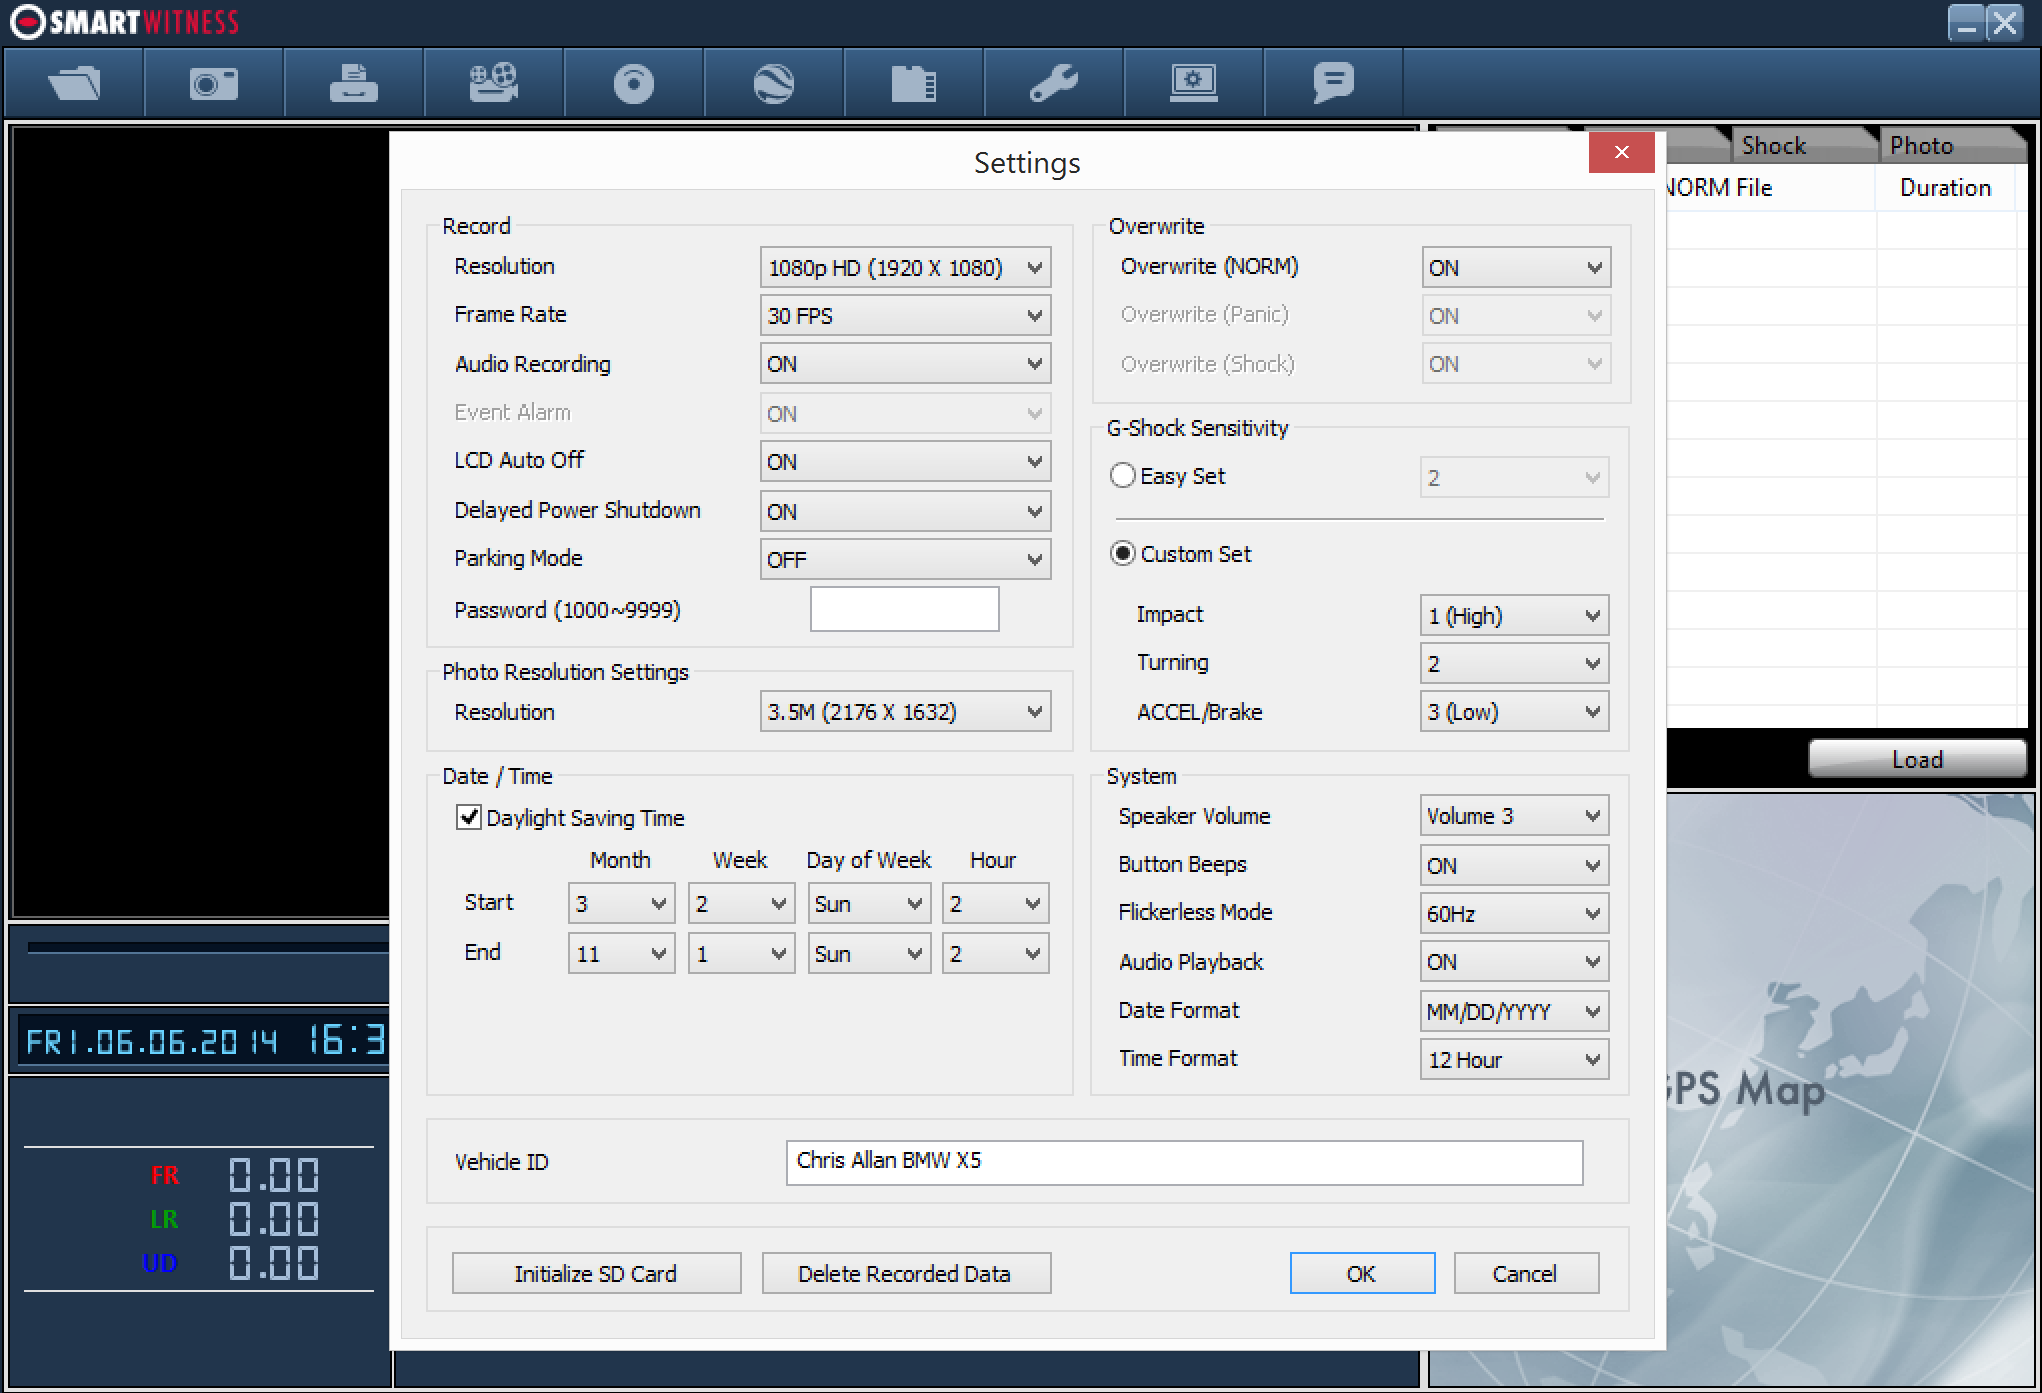 Flexible Recording Options & Settings Recording settings can be set at